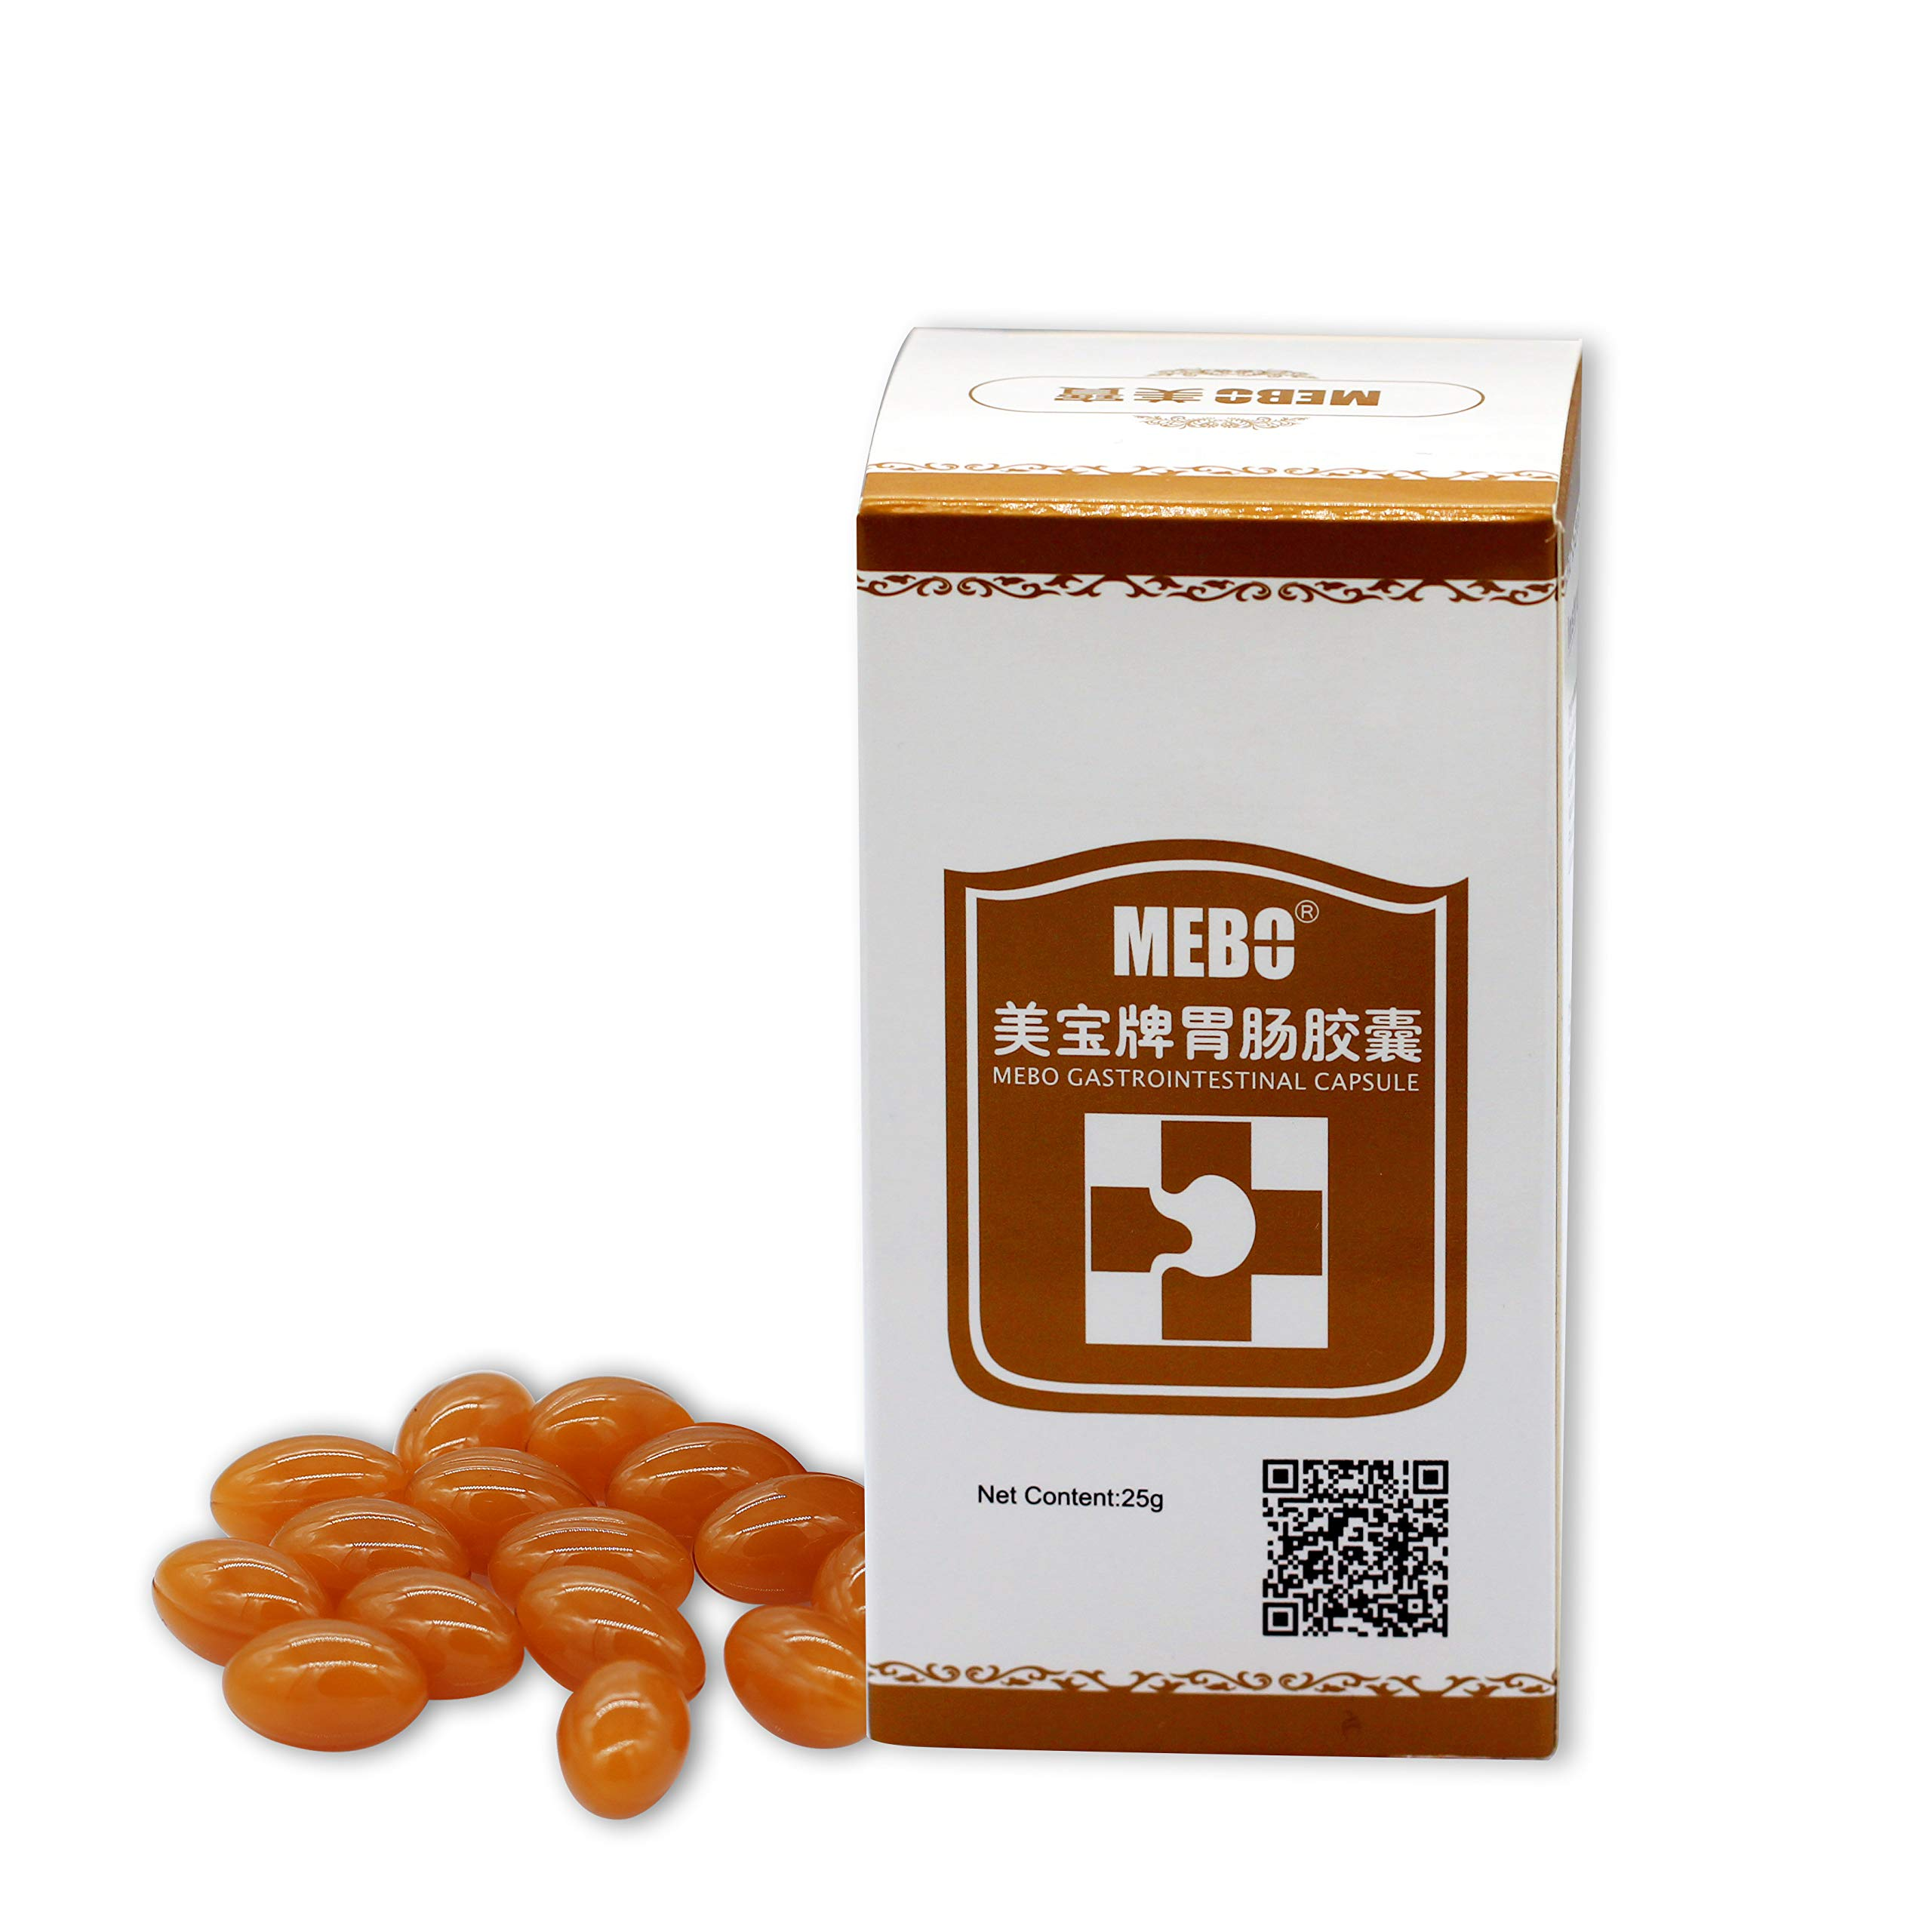 MEBO Stomach Capsule, Overnight Constipation Relief, Intestinal Cleaner, Stomach Comfort, Pure Natural Ingredients, Anti-Aging, Health, Daily Support, Balance, Supplement 0.5g 50 Capsules (1 Bottle)